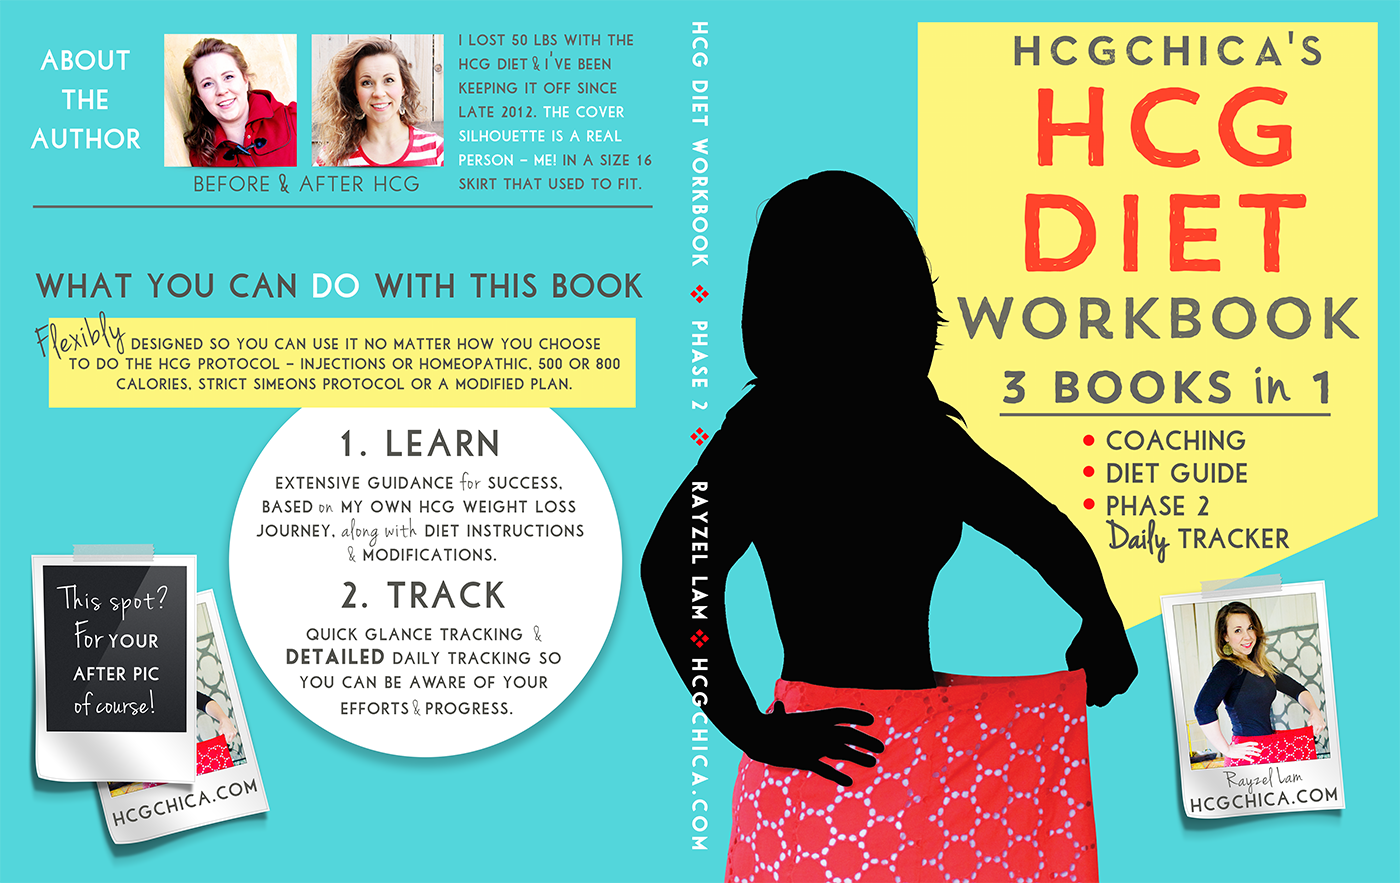 Cover of the Phase 2 hCG Diet Workbook by hcgchica